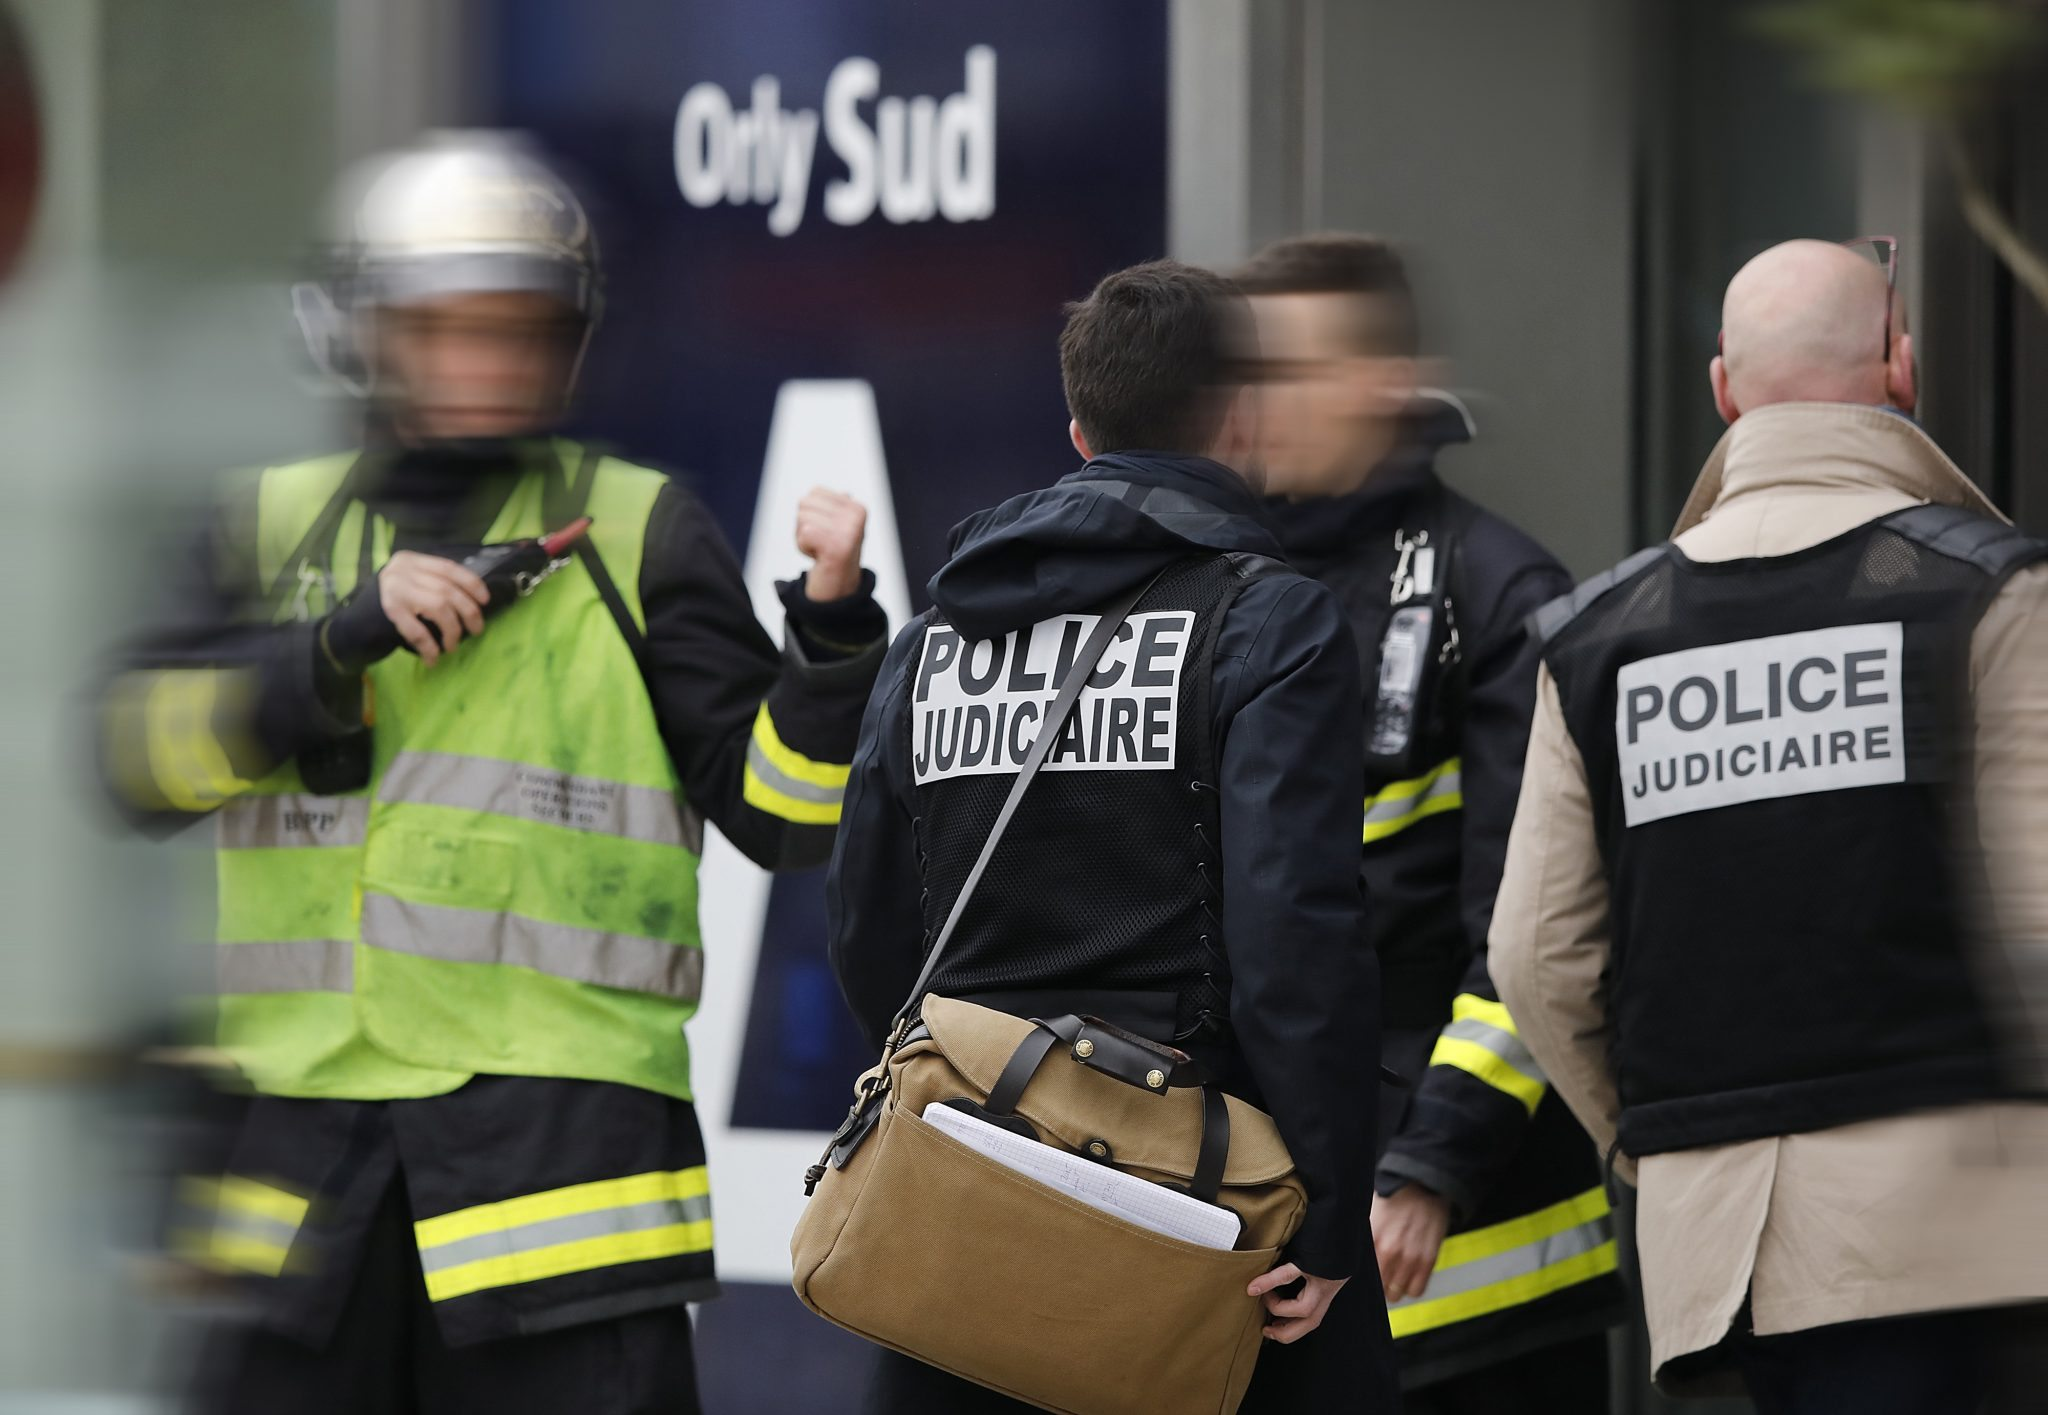 Judicial police investigators enter Orly airport southern terminal after shooting incident near Paris | REUTERS